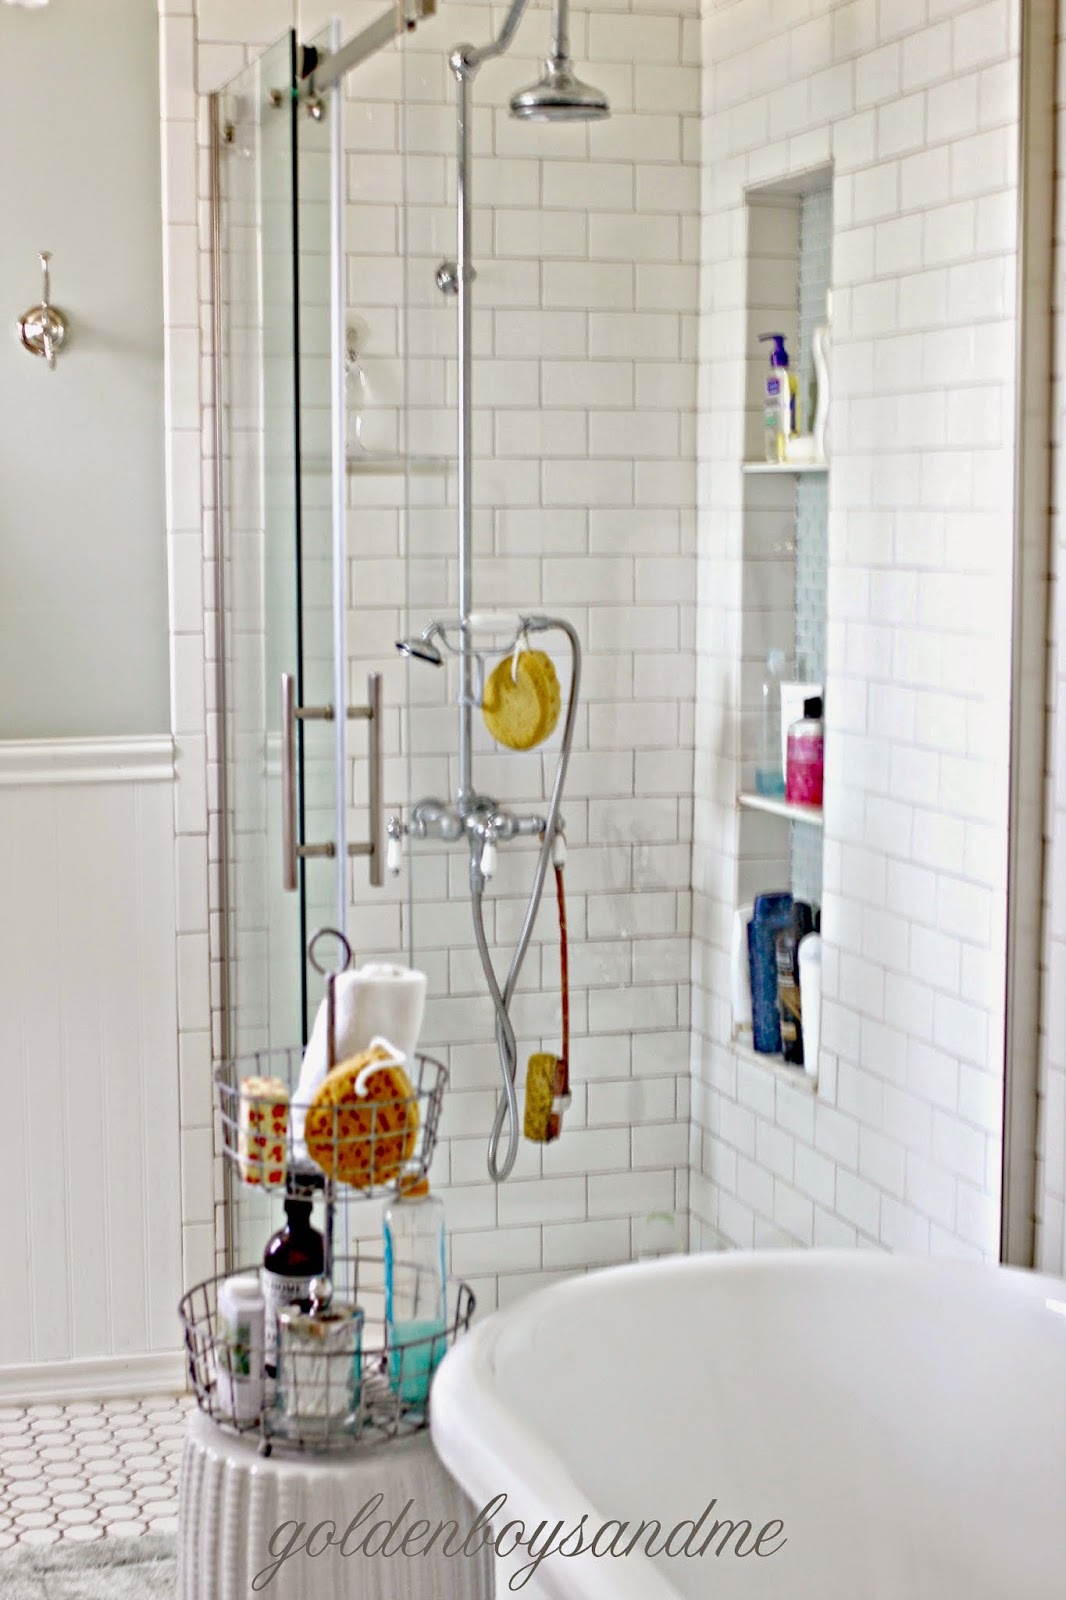 DIY master bathroom with white subway tile and tall shower niche-www.goldenboysandme.com